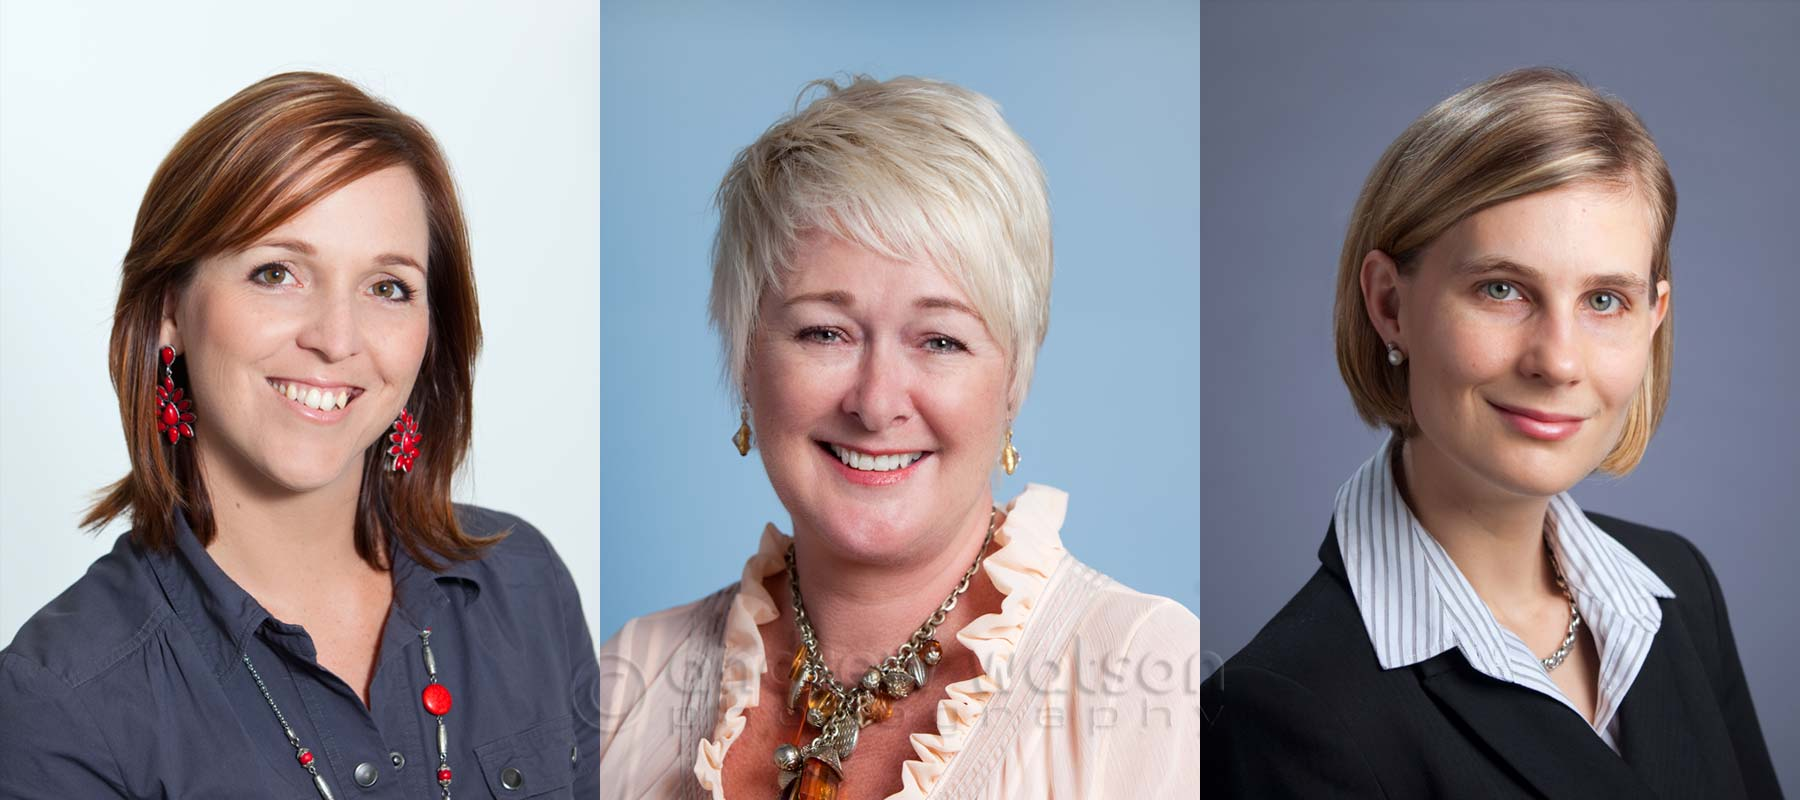 Corporate Photography - Corporate portraits for business operators